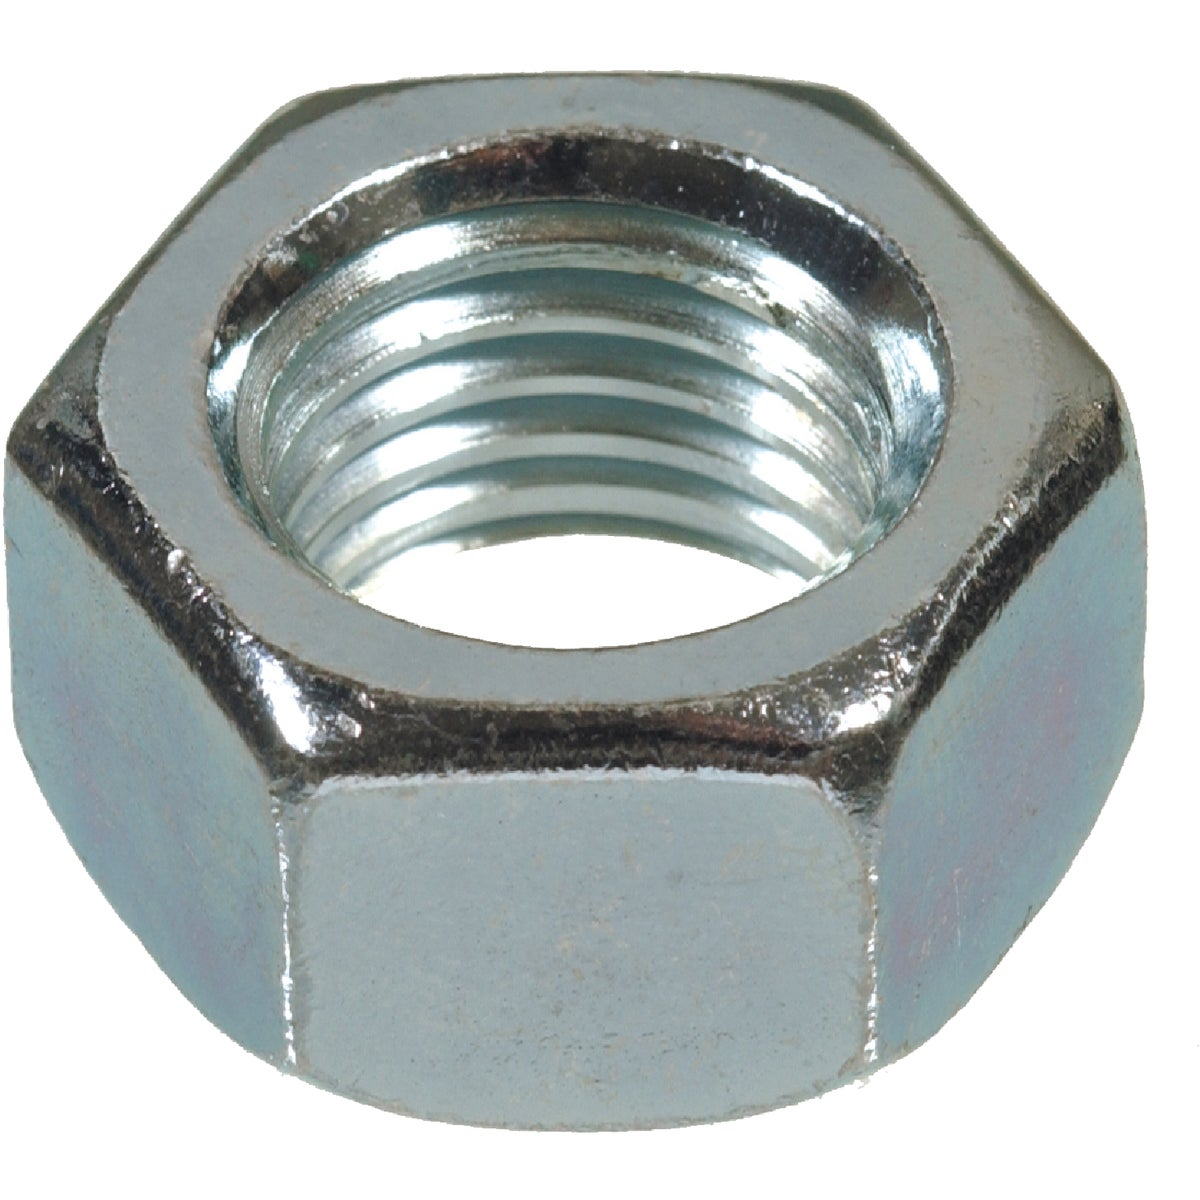 100PC 5/16-18CRS HEX NUT - 160502 by Hillman Fastener